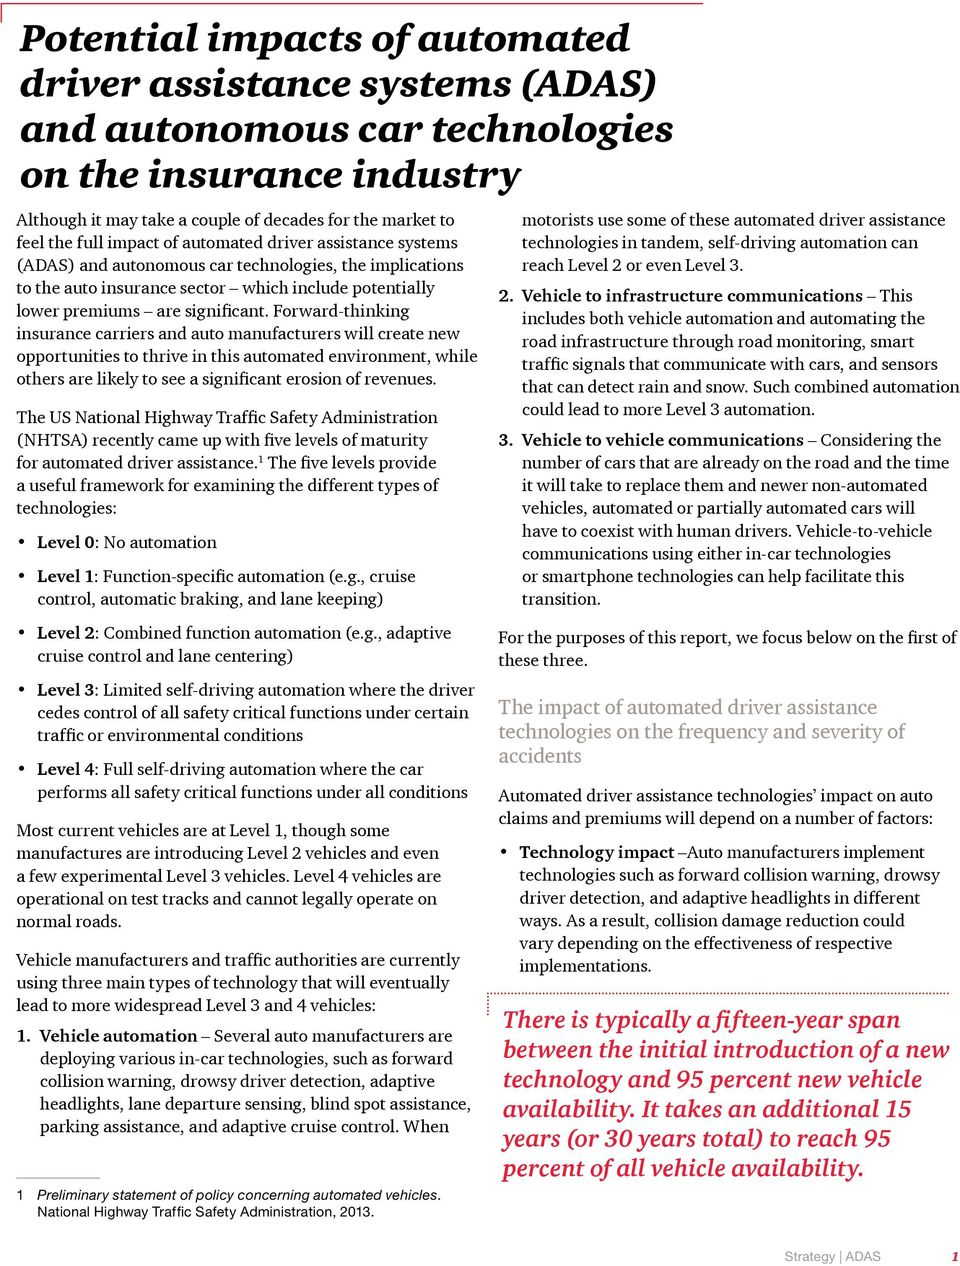 Forward-thinking insurance carriers and auto manufacturers will create new opportunities to thrive in this automated environment, while others are likely to see a significant erosion of revenues.